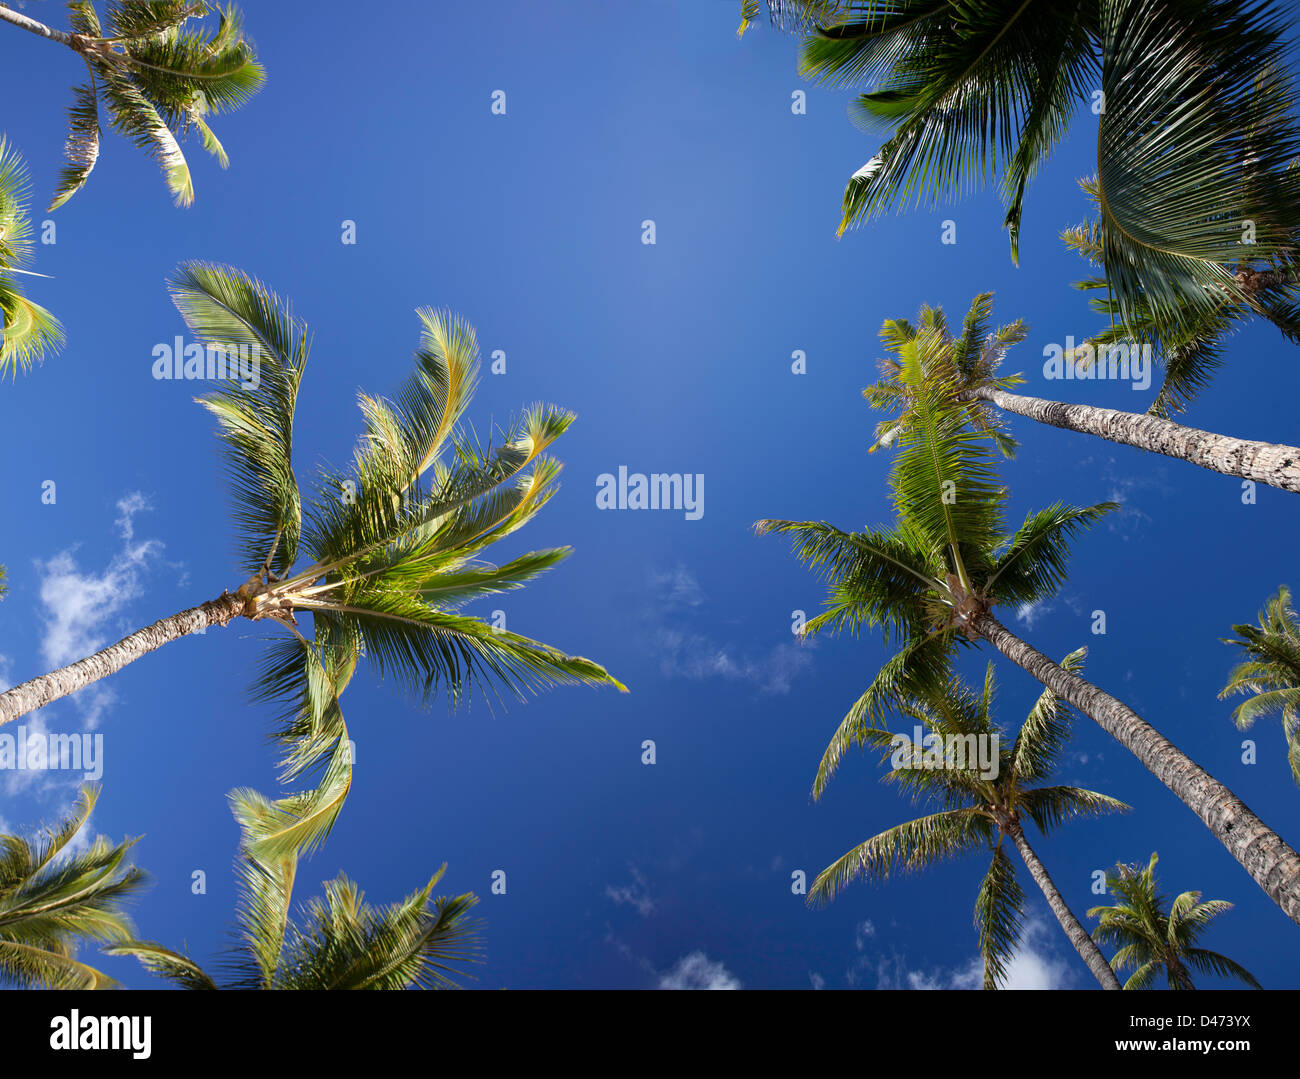 A view from below of palm trees and blue sky, Maui, Hawaii. - Stock Image